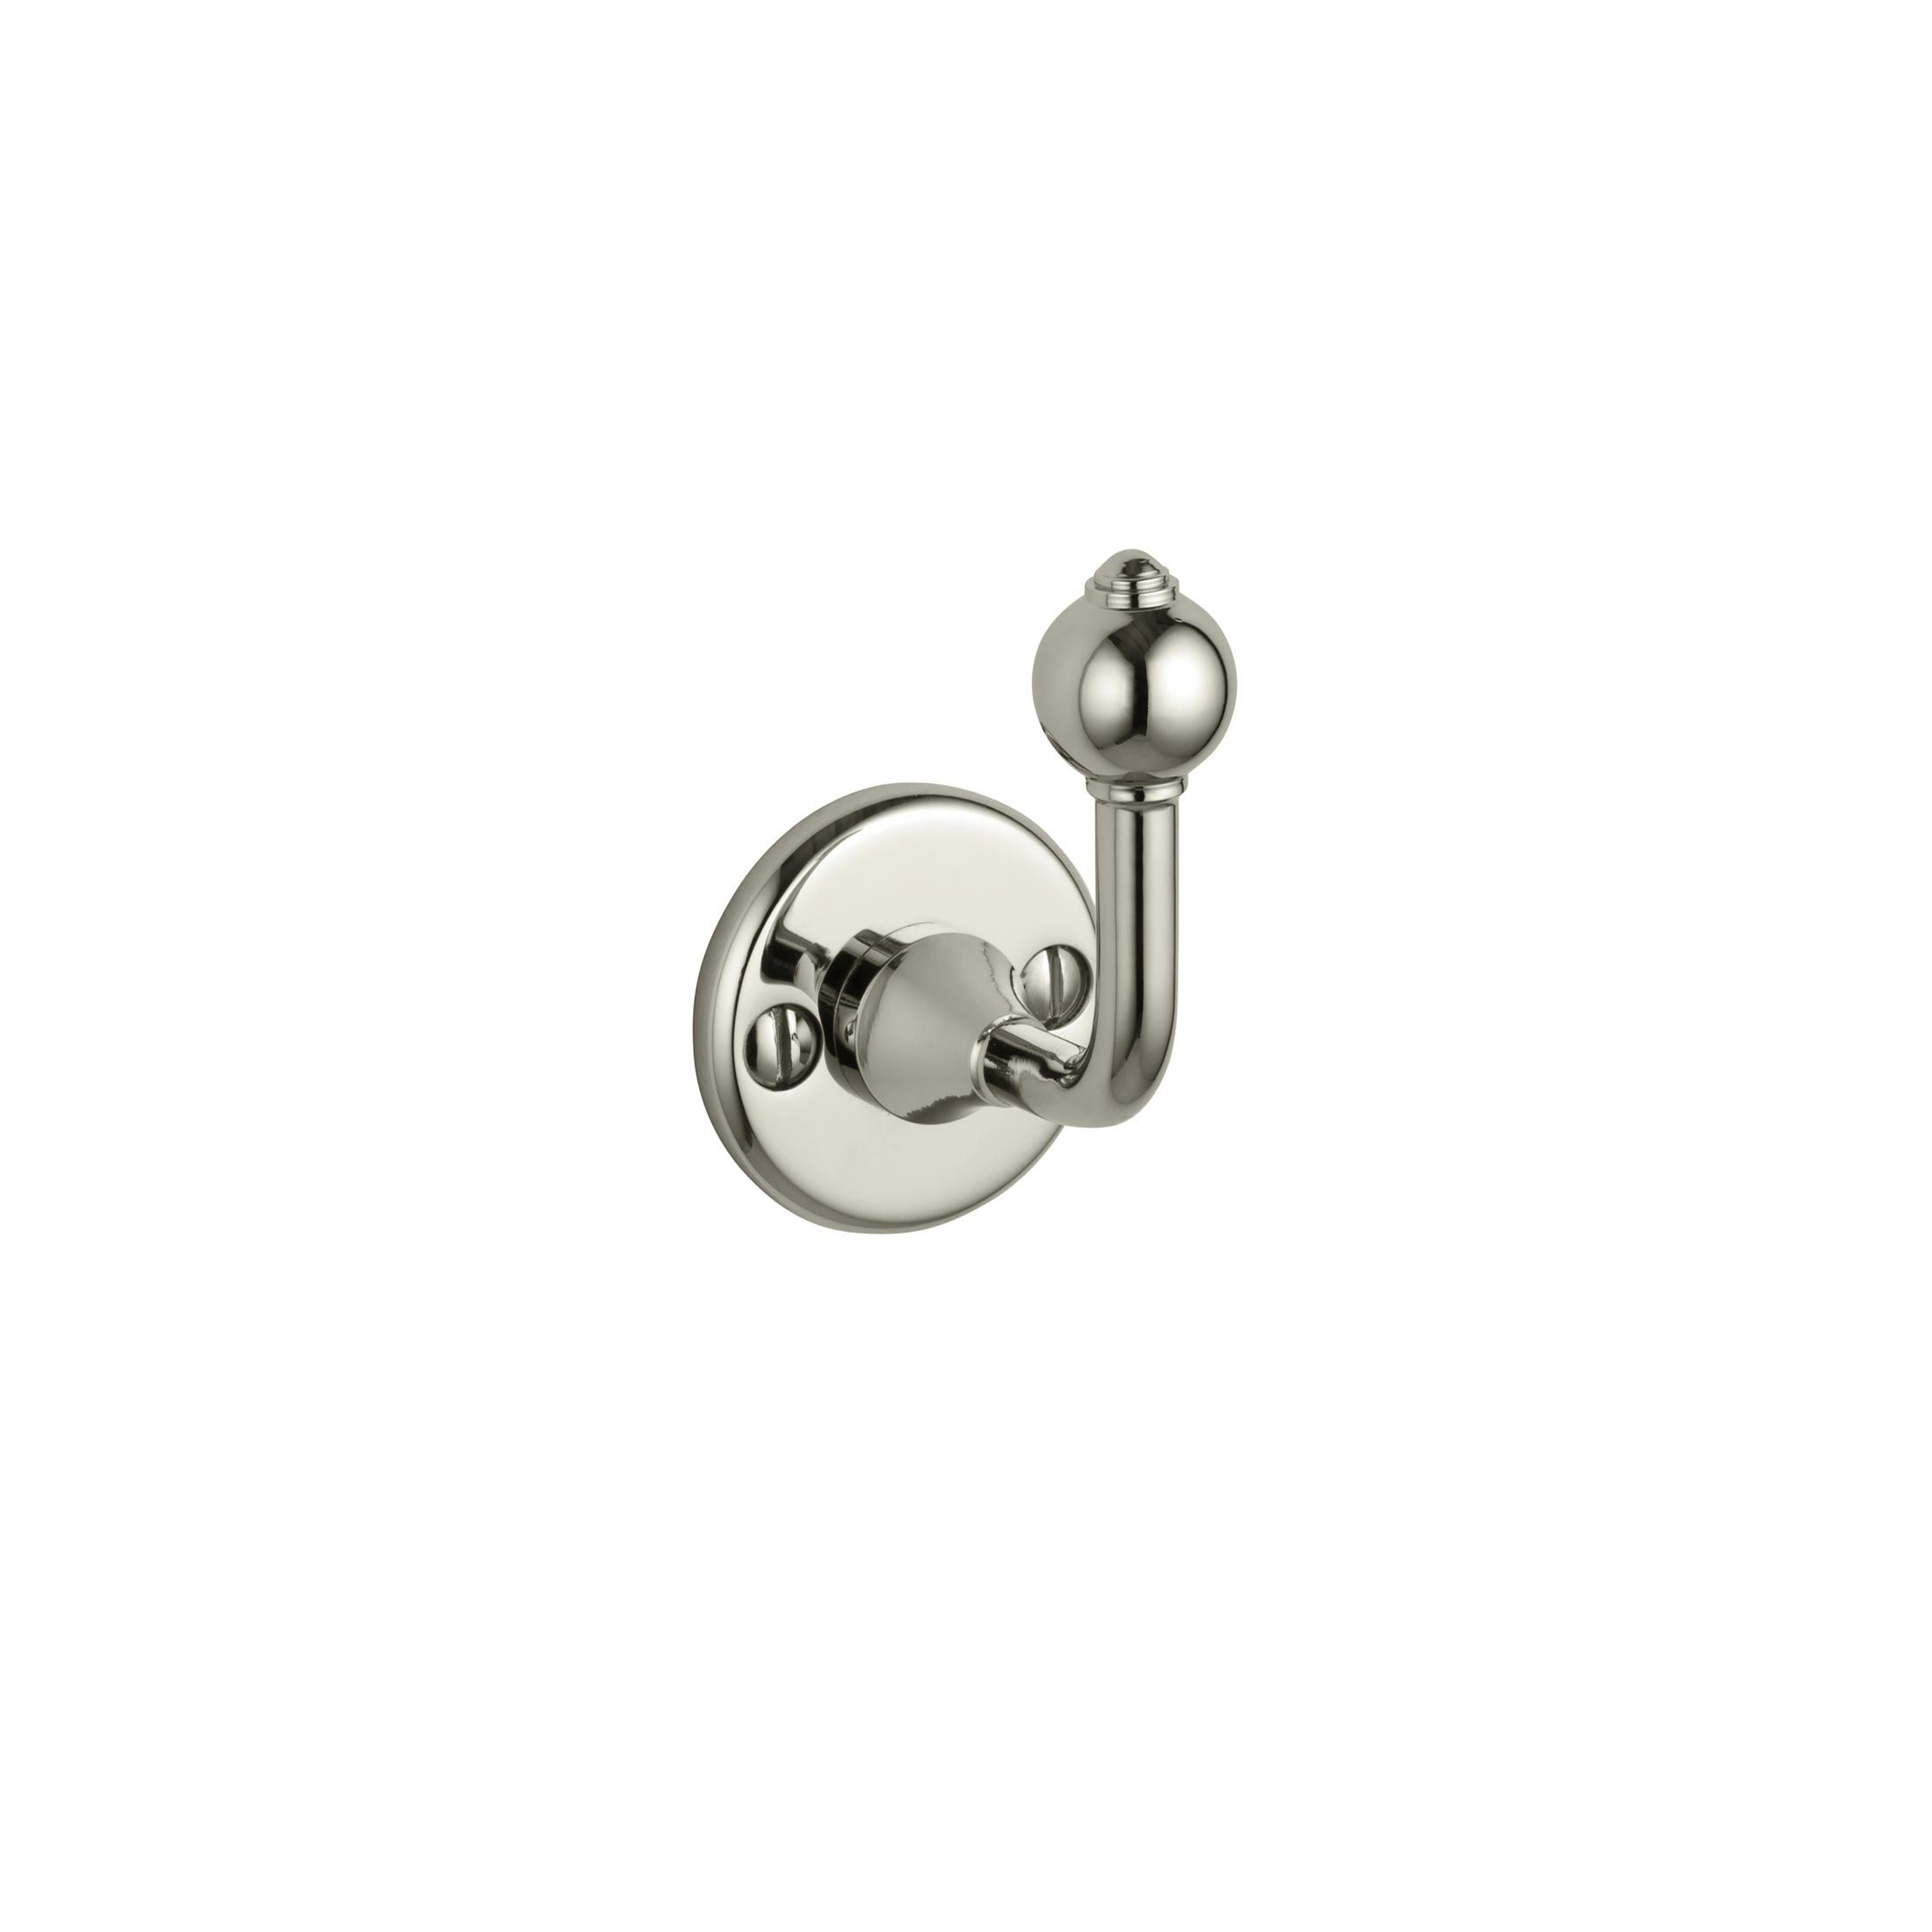 The Bathroom robe hook is the perfect finishing touch to any ...